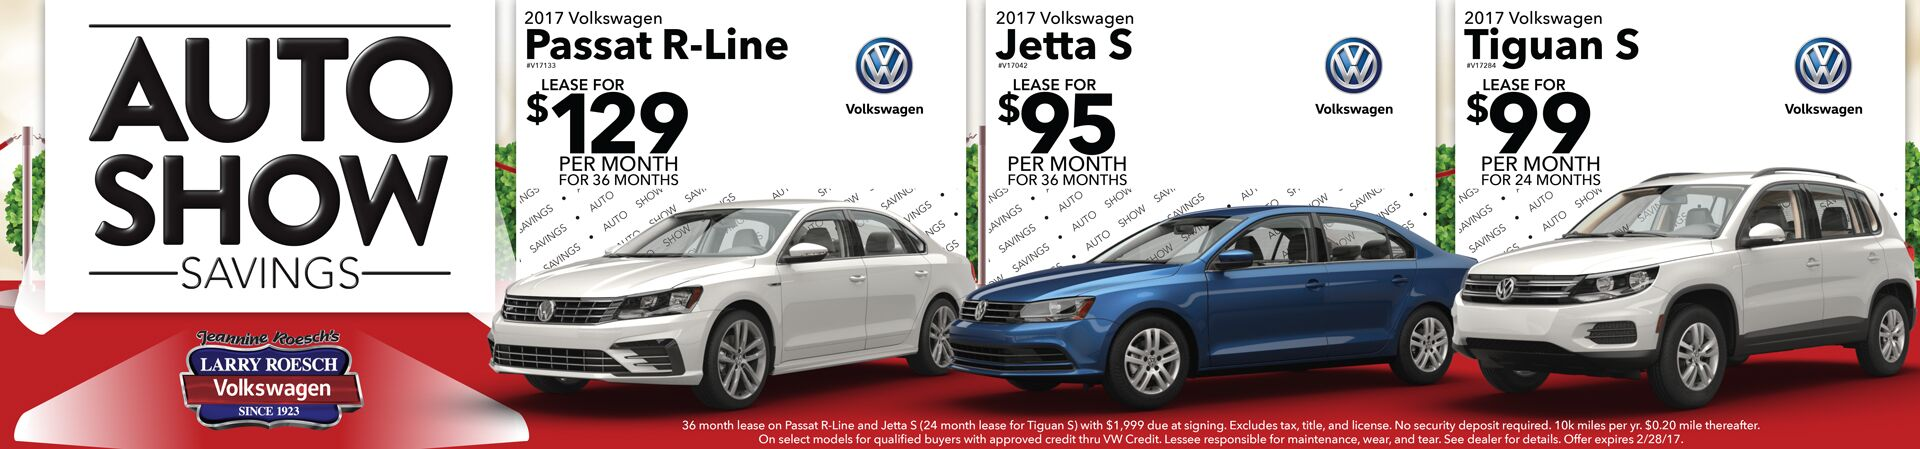 VW Model Lease Prices